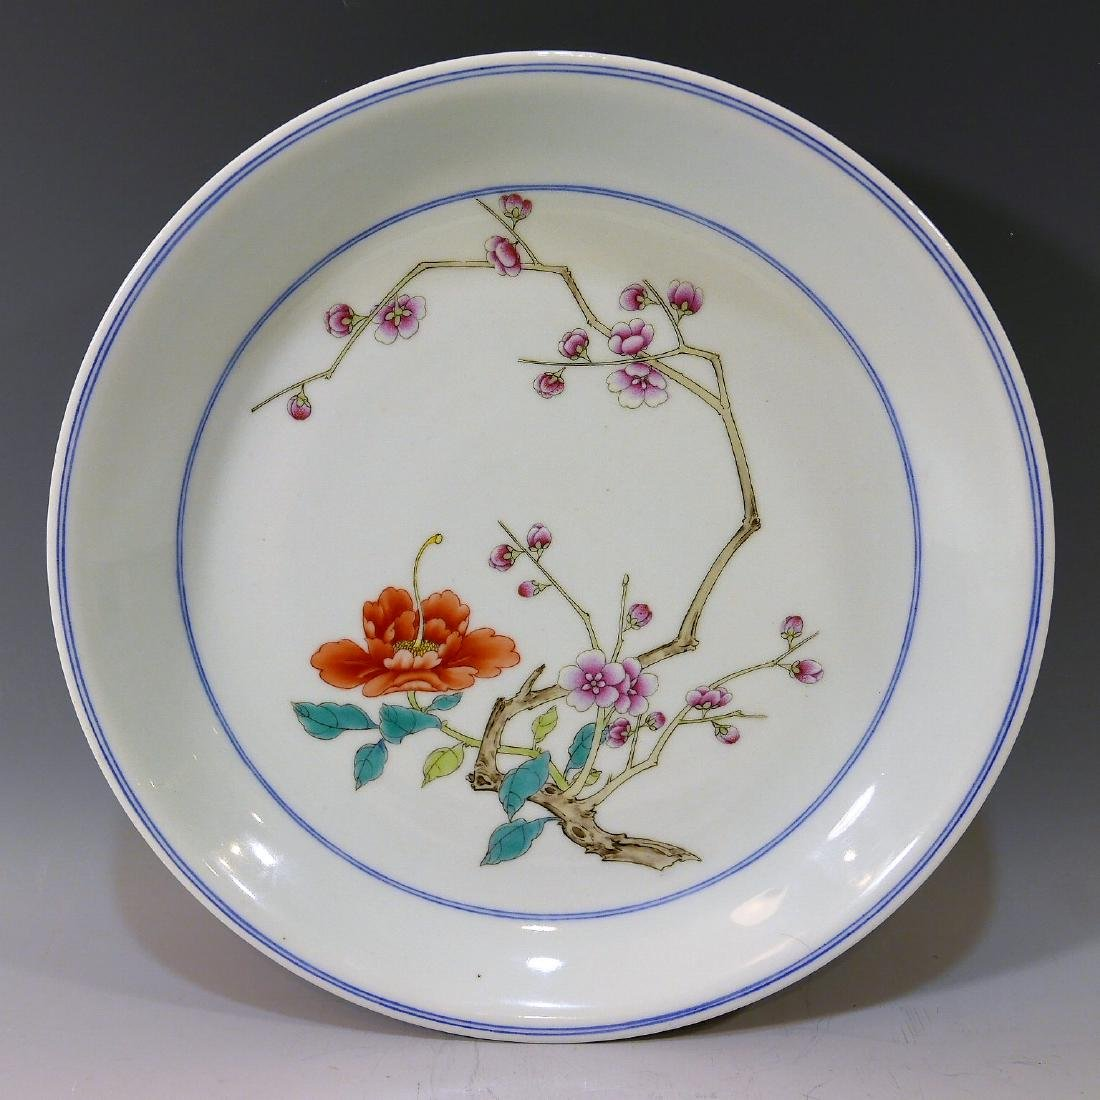 CHINESE ANTIQUE IMPERIAL FAMILLE ROSE PORCELAIN PLATE -